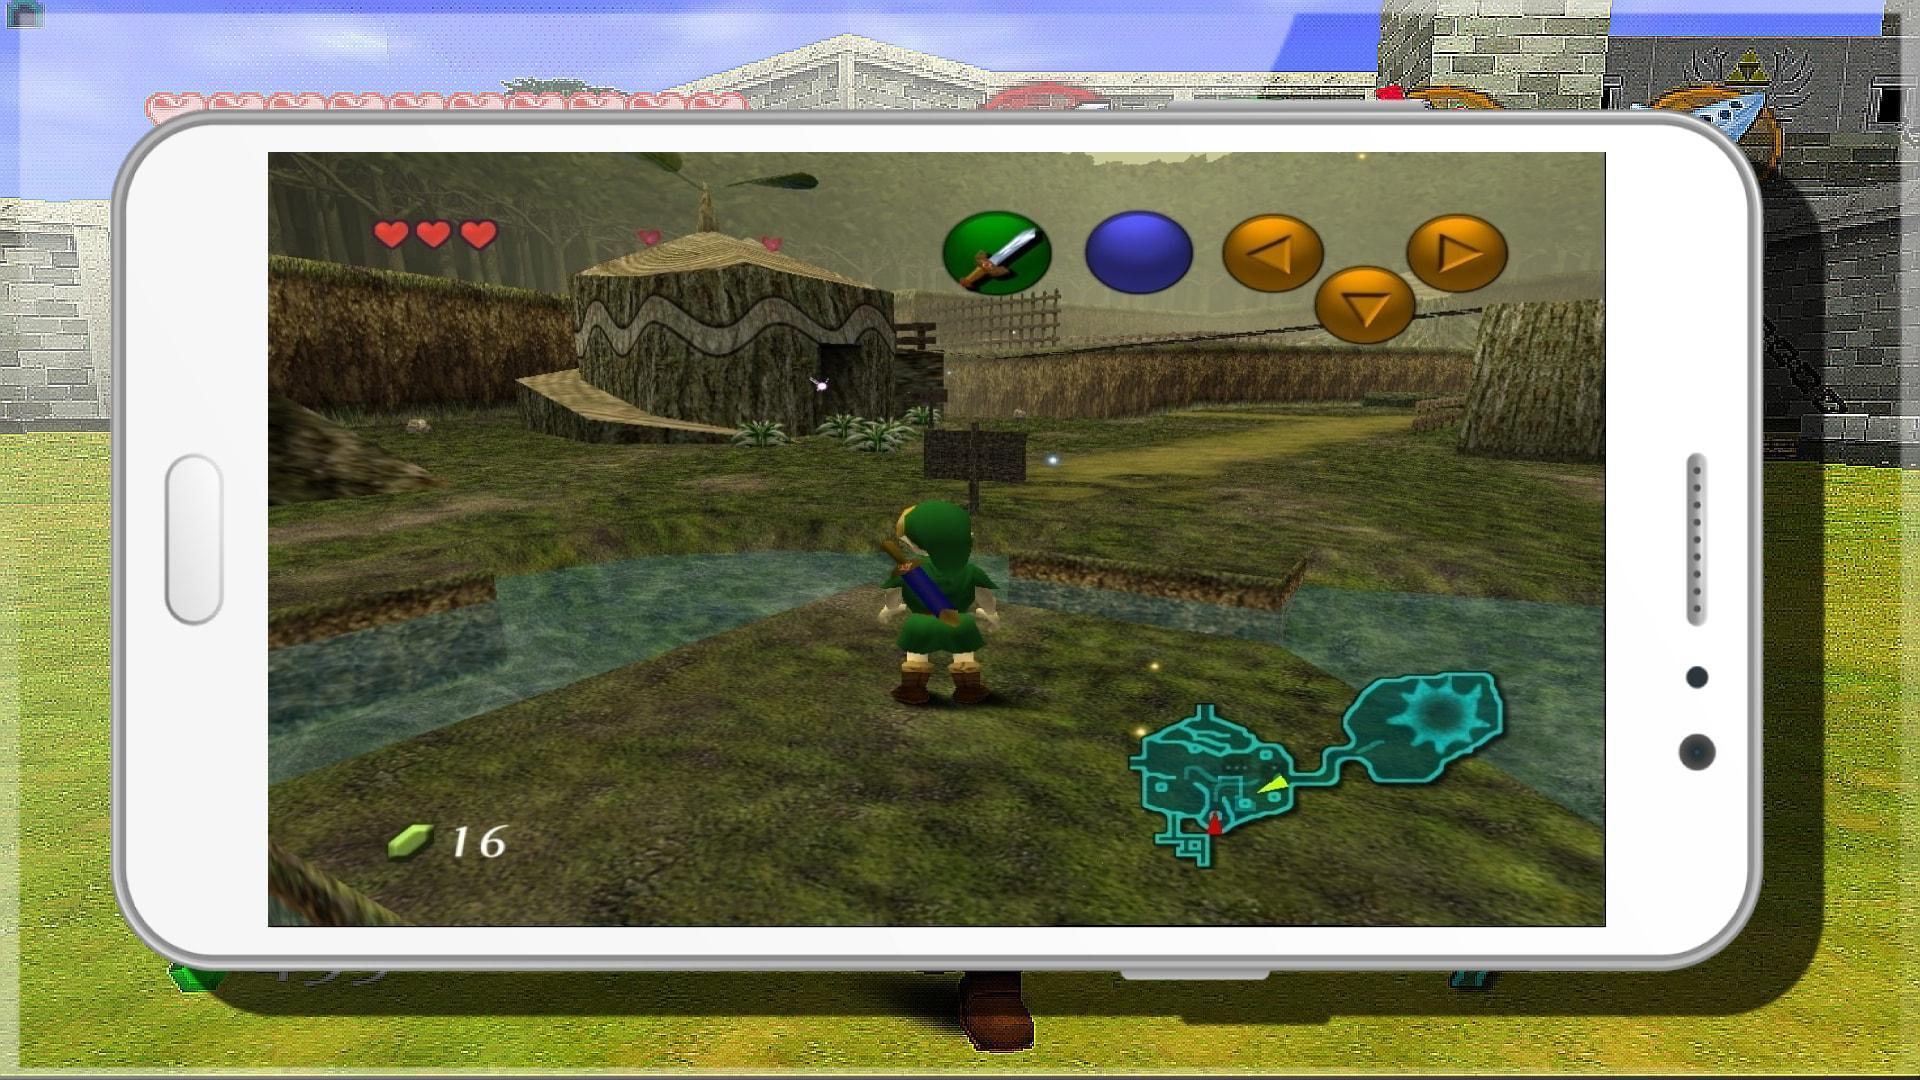 guide zelda ocarina of time for Android - APK Download